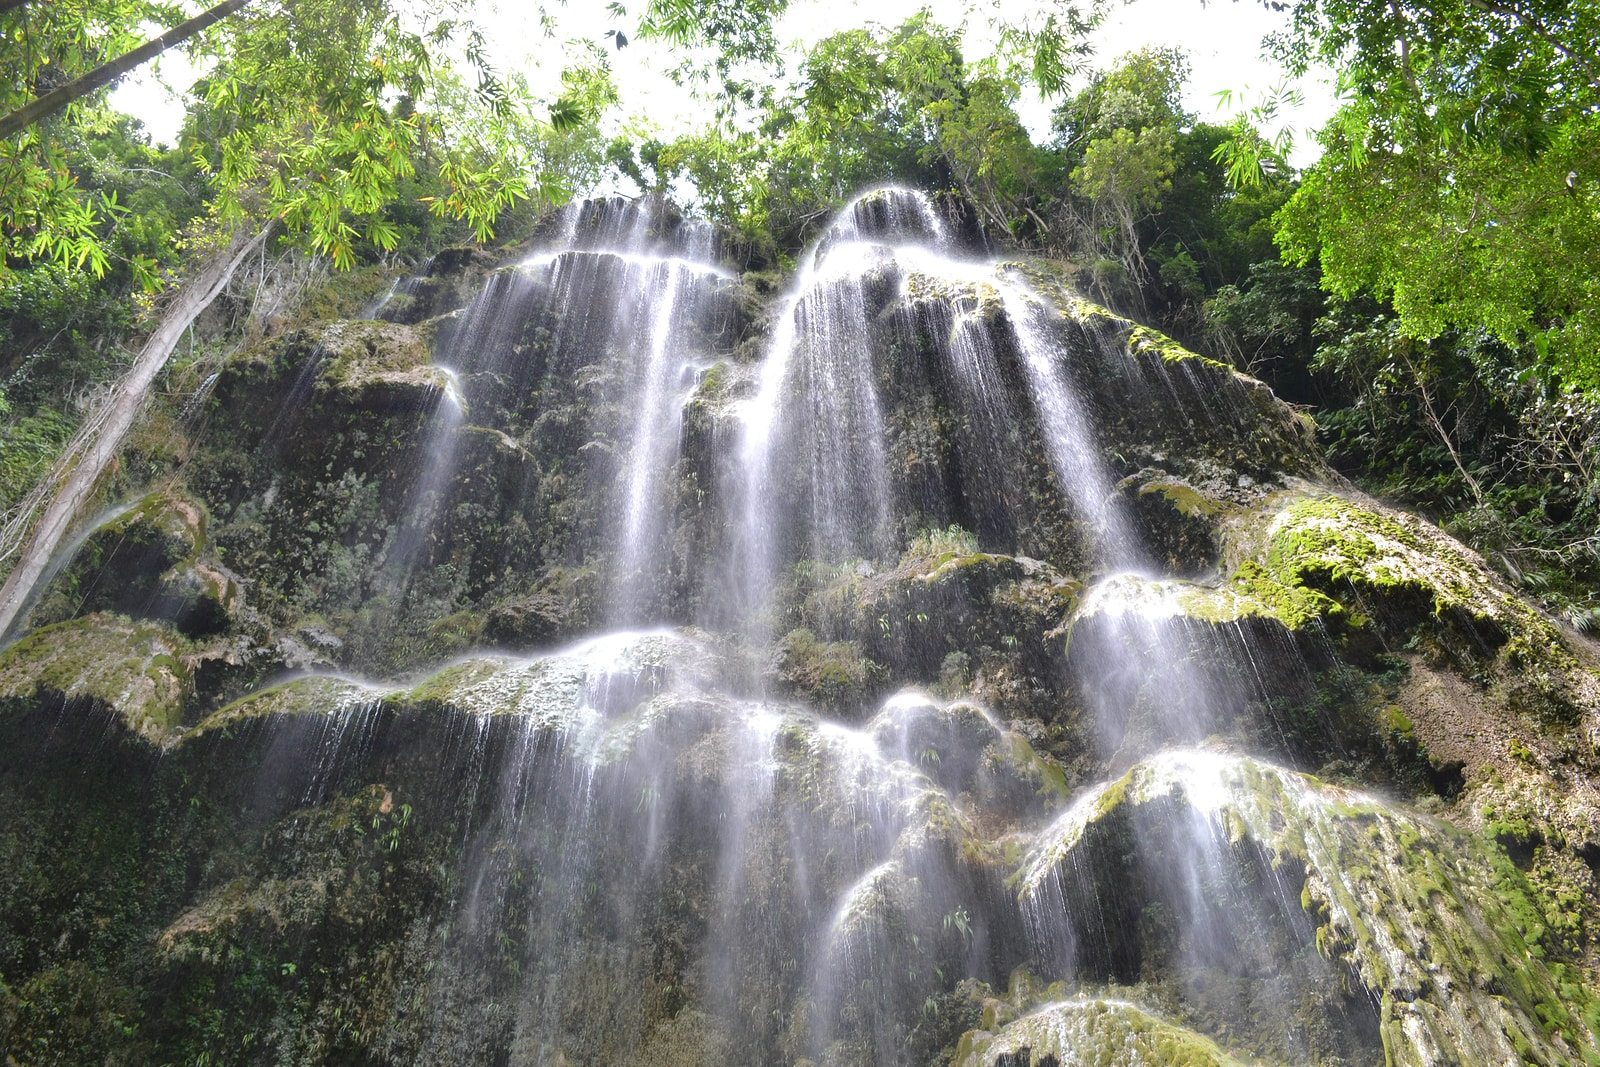 Tumalog waterfalls in Oslob